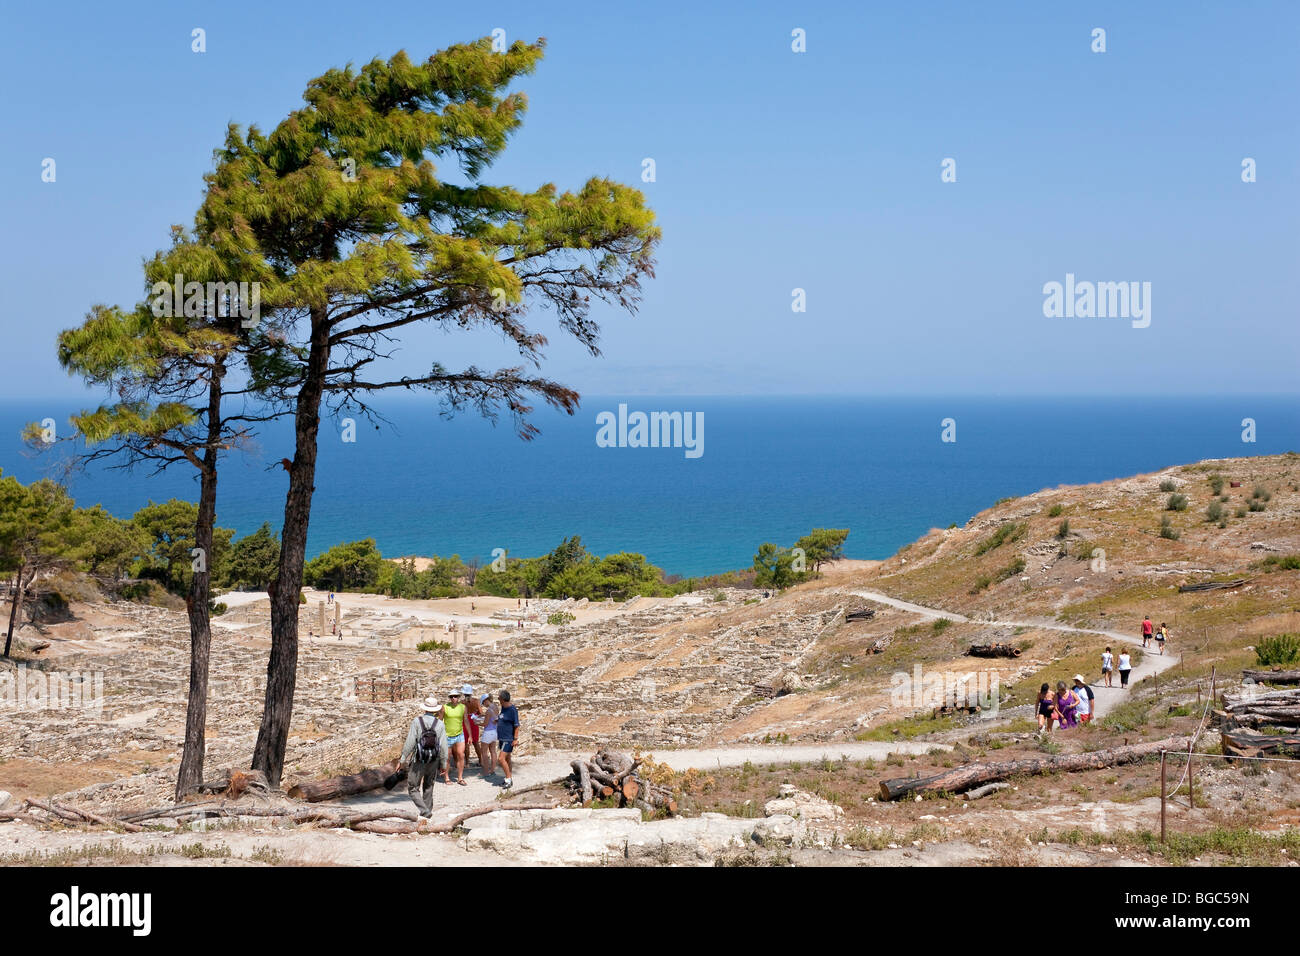 The excavation site of ancient Kamiros, Rhodes island, west coast, Greece, Southern Europe, Europe - Stock Image